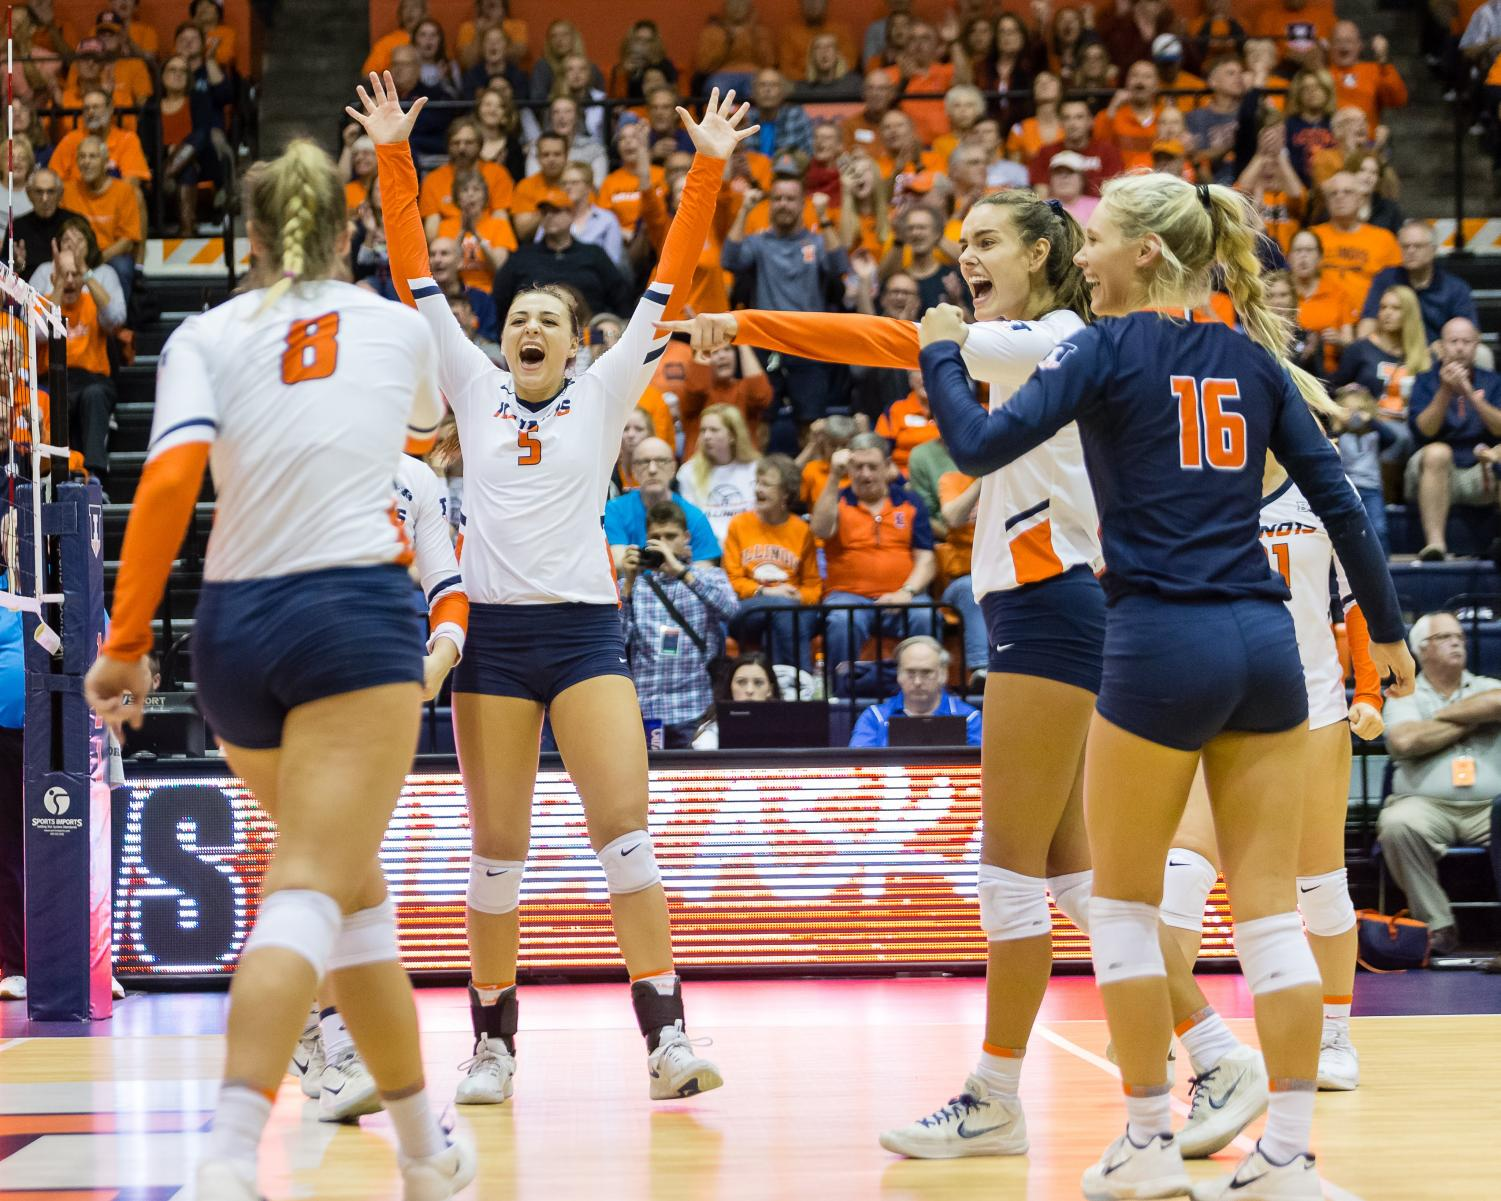 Illinois outside hitter Jacqueline Quade spikes the ball from the back row during the match against Nebraska at Huff Hall on Saturday. The Illini lost 3-1.